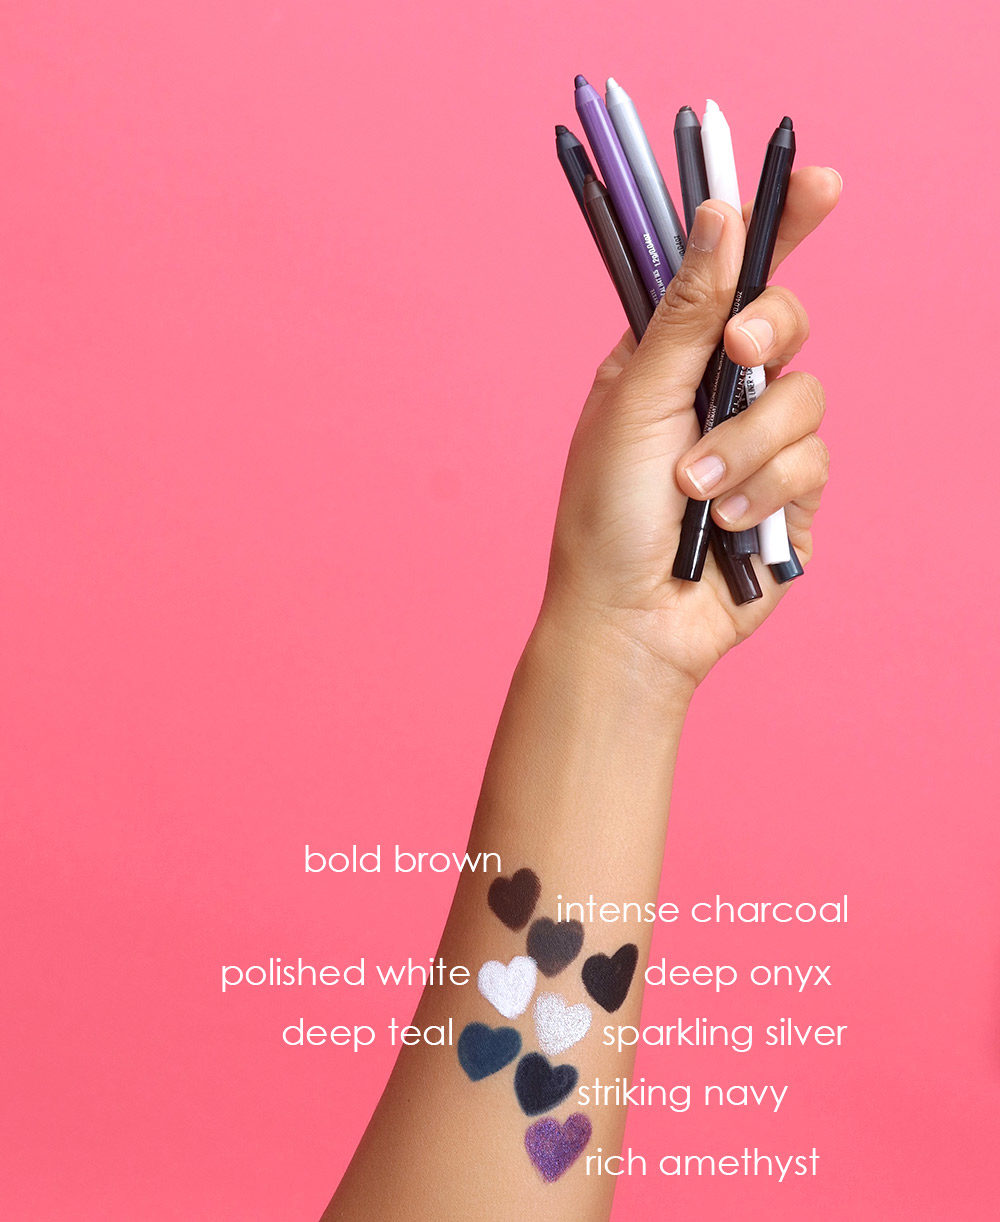 maybelline tattoo studio eyeliner pencil swatches